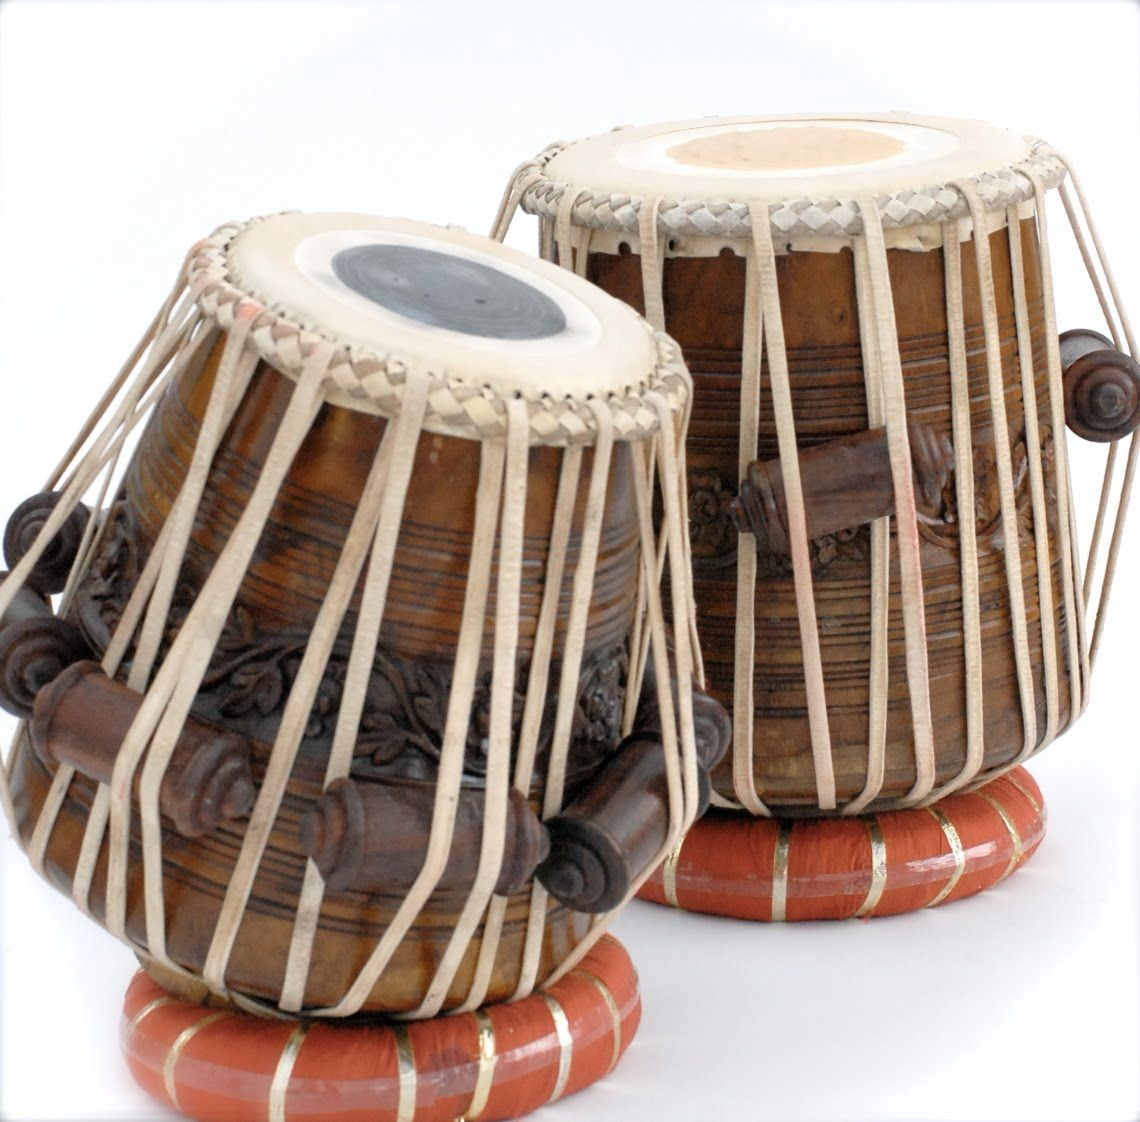 The tabla is a membranophone percussion instrument which ...